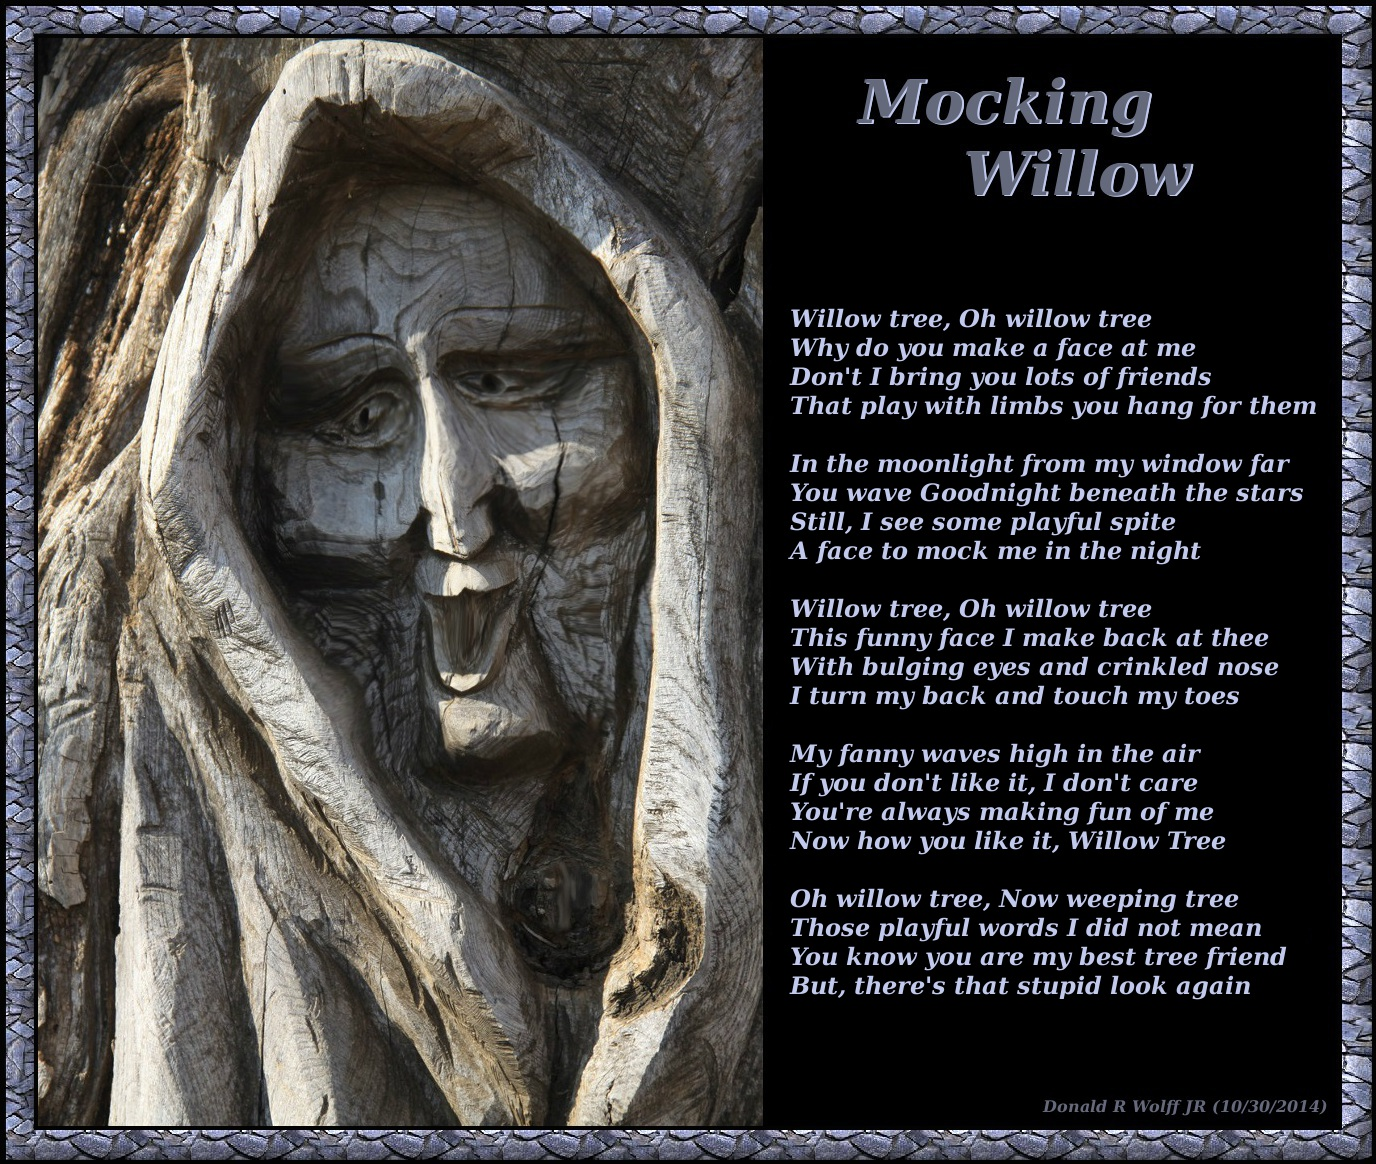 Mocking Willow